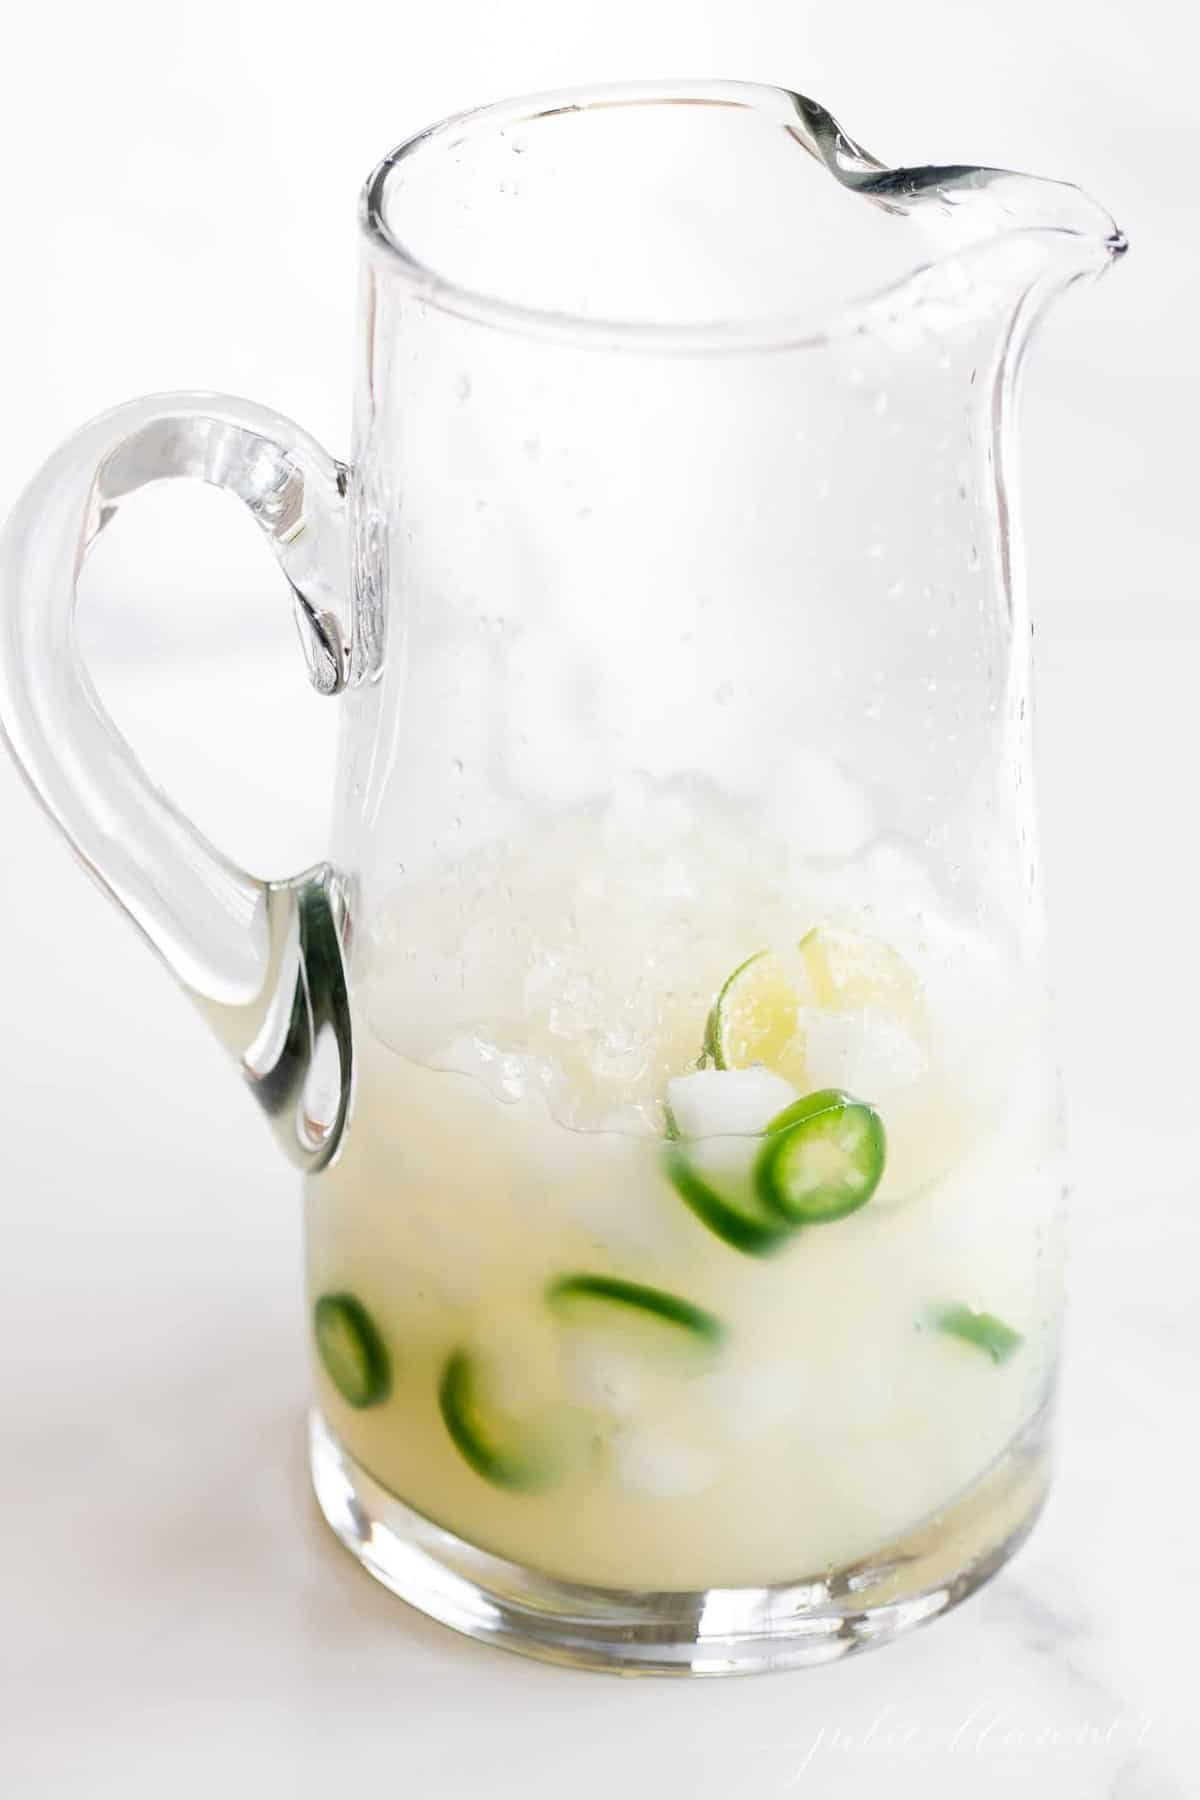 A clear glass pitcher full of spicy jalapeno margaritas, sliced jalapenos and limes floating in the ice.